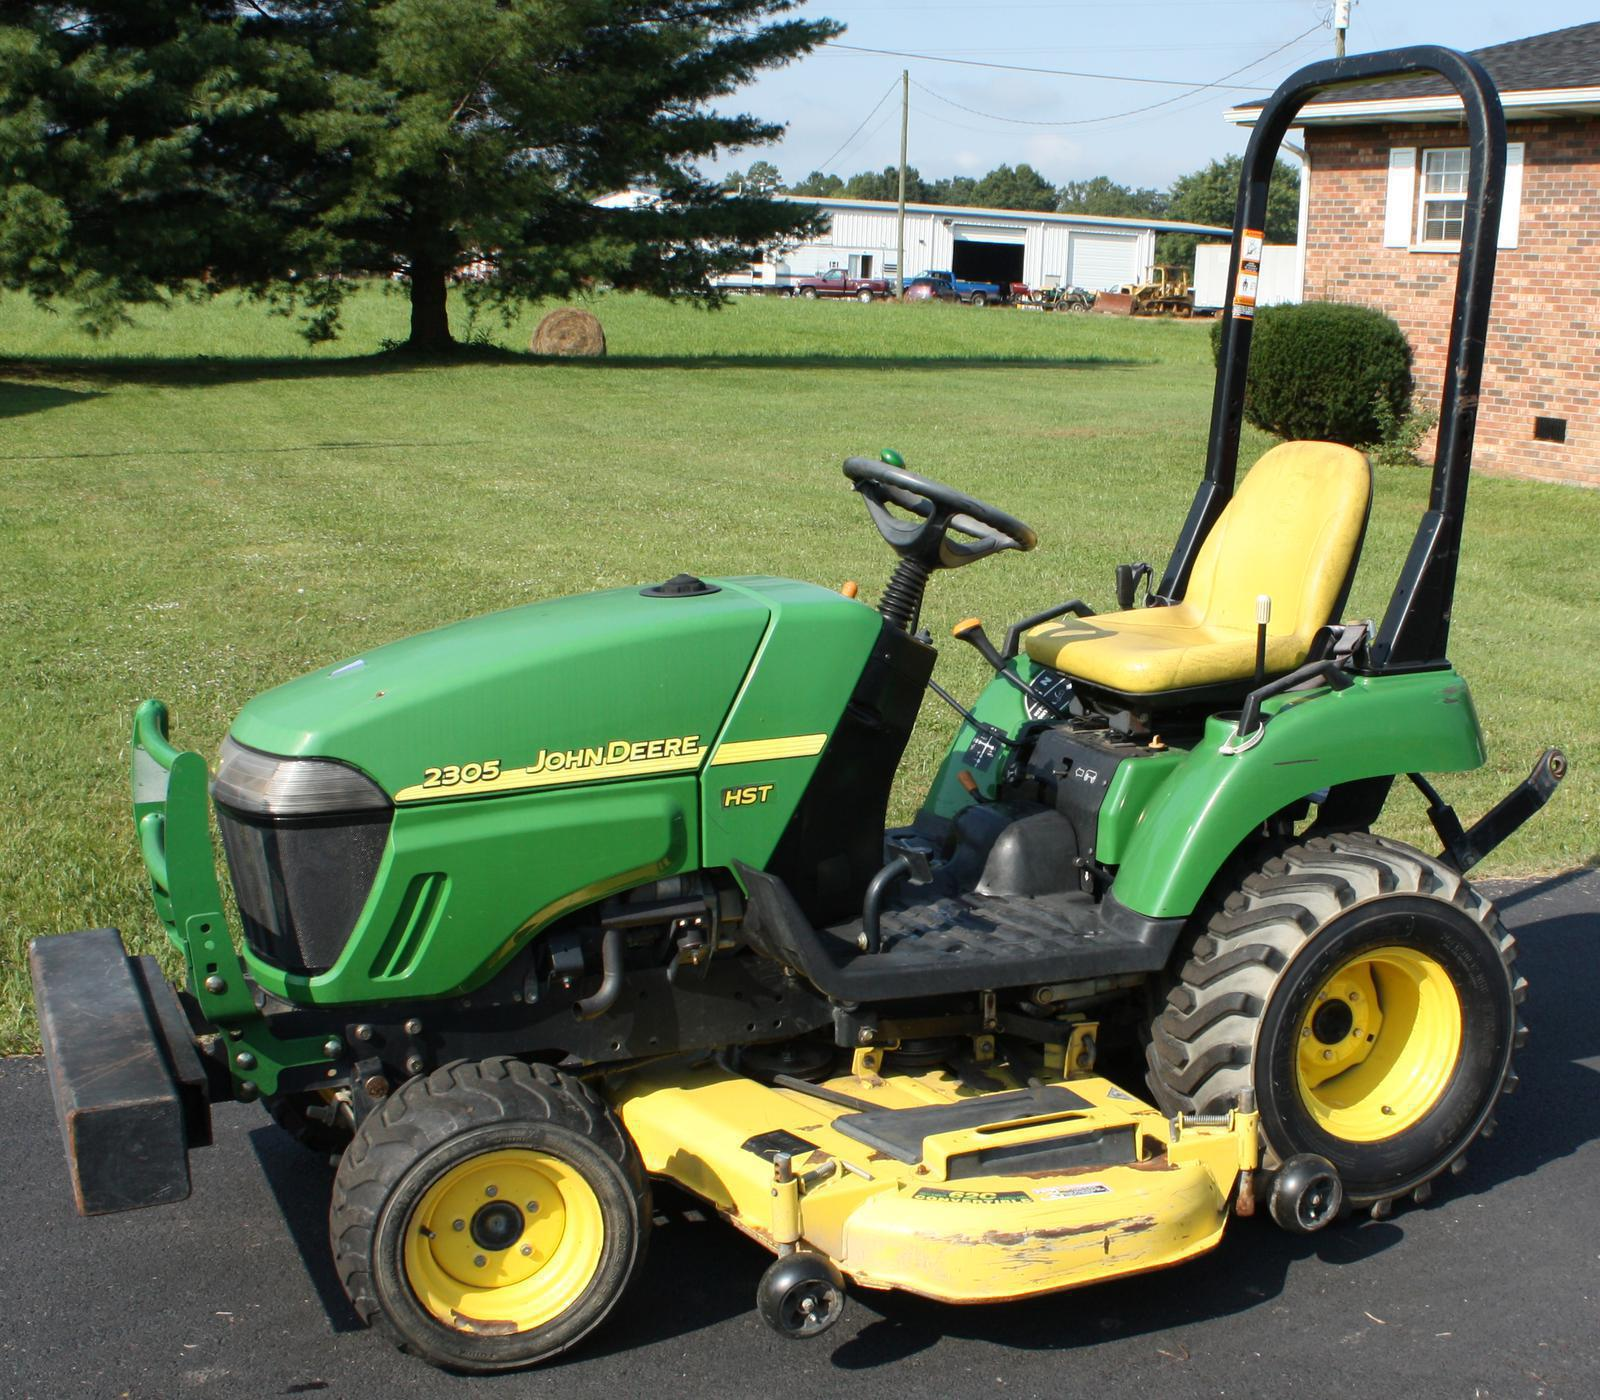 John Deere JD 2305 for sale in Corbin, KY | Siler Implement Company, Inc.  (606) 528-6481